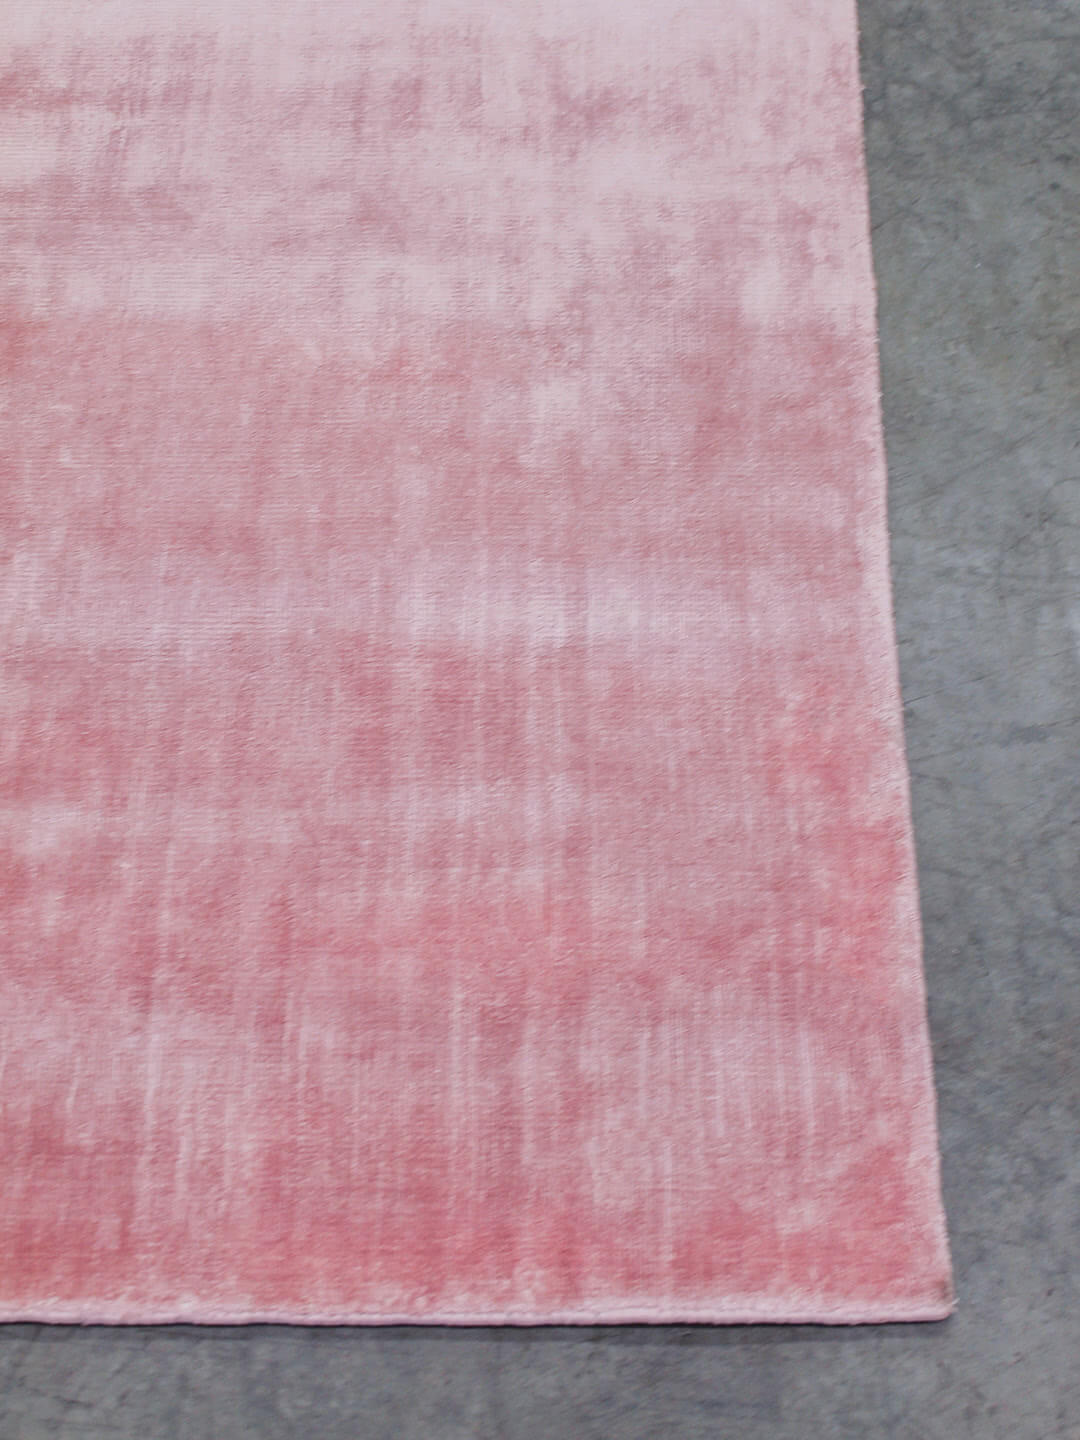 blush-art silk-hand woven-Stans-rugs-glitz-perth